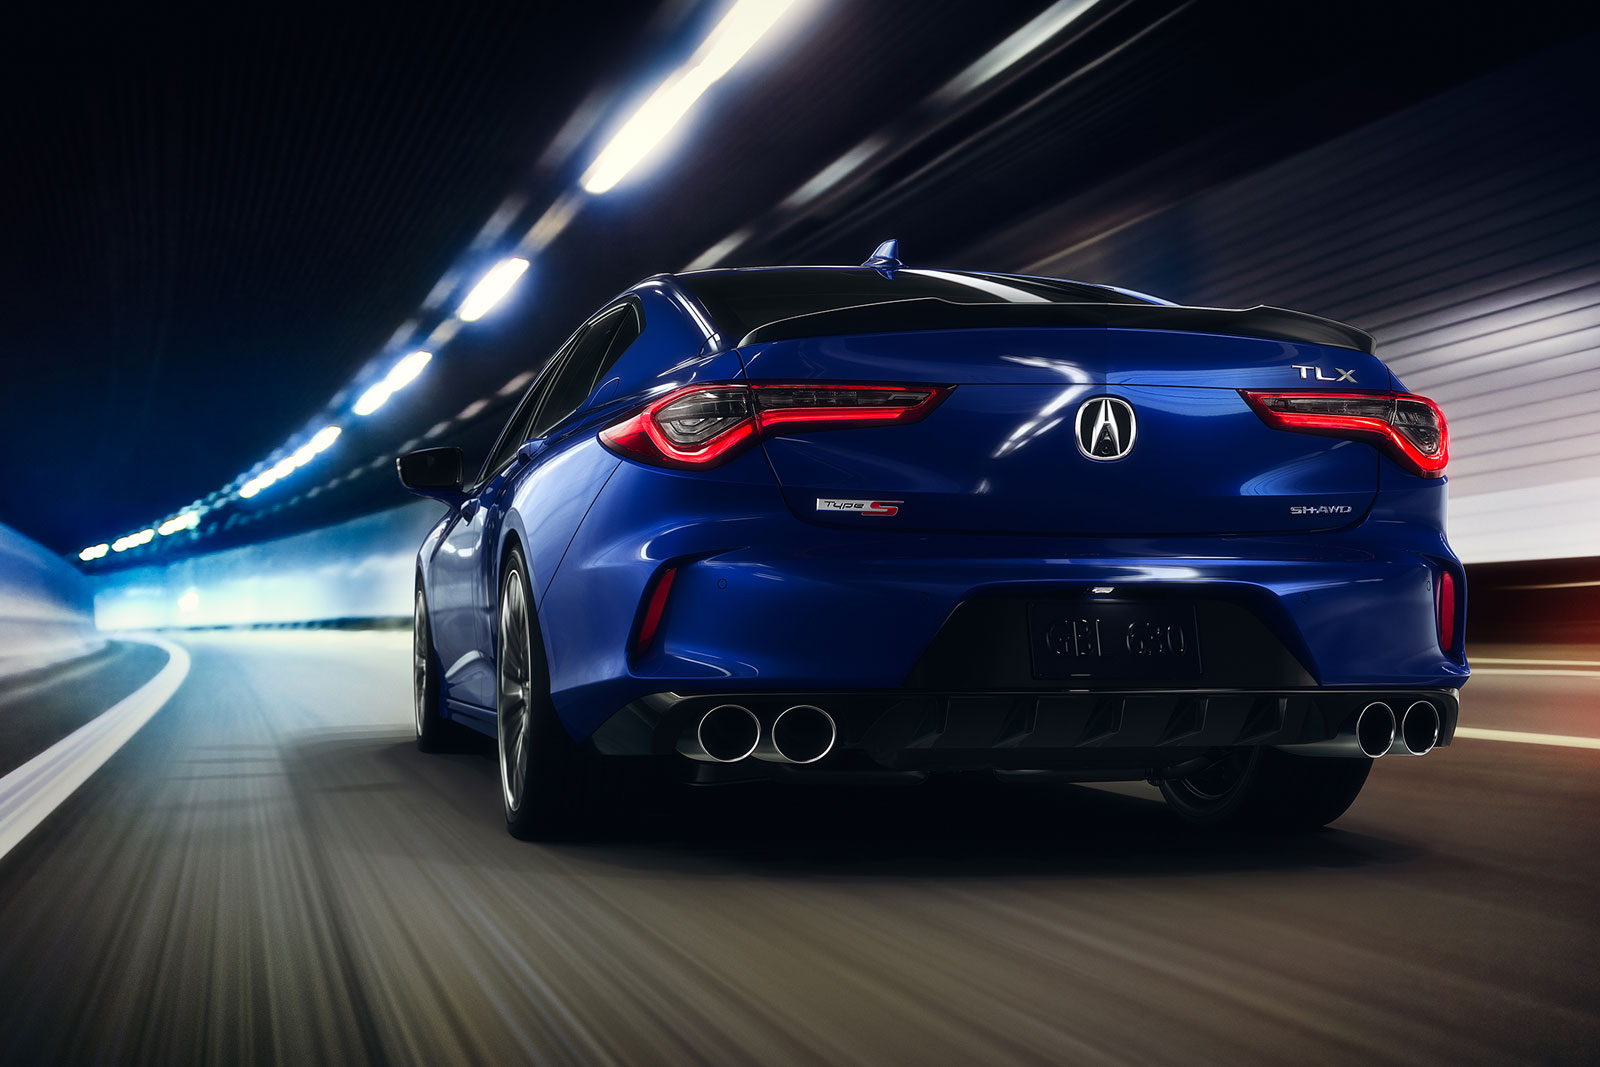 The 2021 Acura Tlx Is Seeking Brand Redemption Motor Illustrated